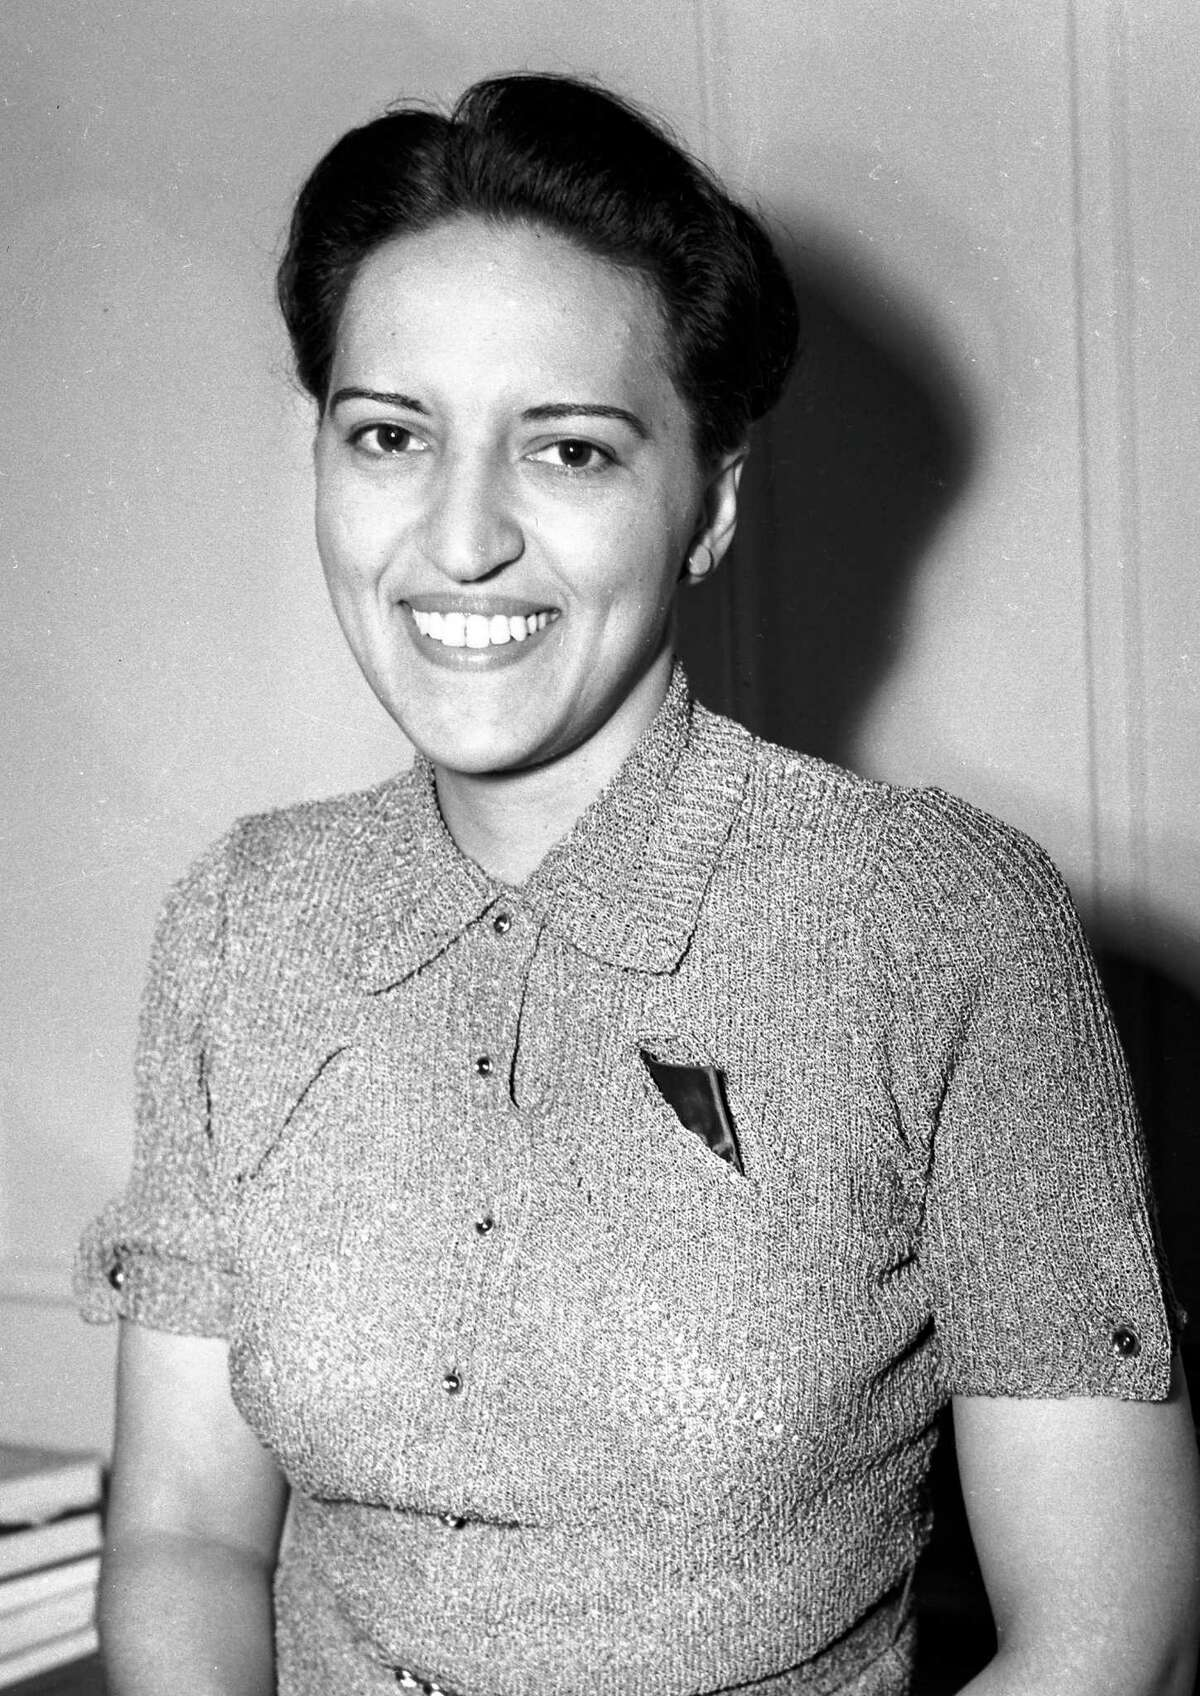 Judge Jane Bolin shown at her home in New York after she was sworn in as a family court judge on July 22, 1939. She was the nation's first black female judge and the first black woman to graduate from Yale Law School. She died in 2007 at age 98.